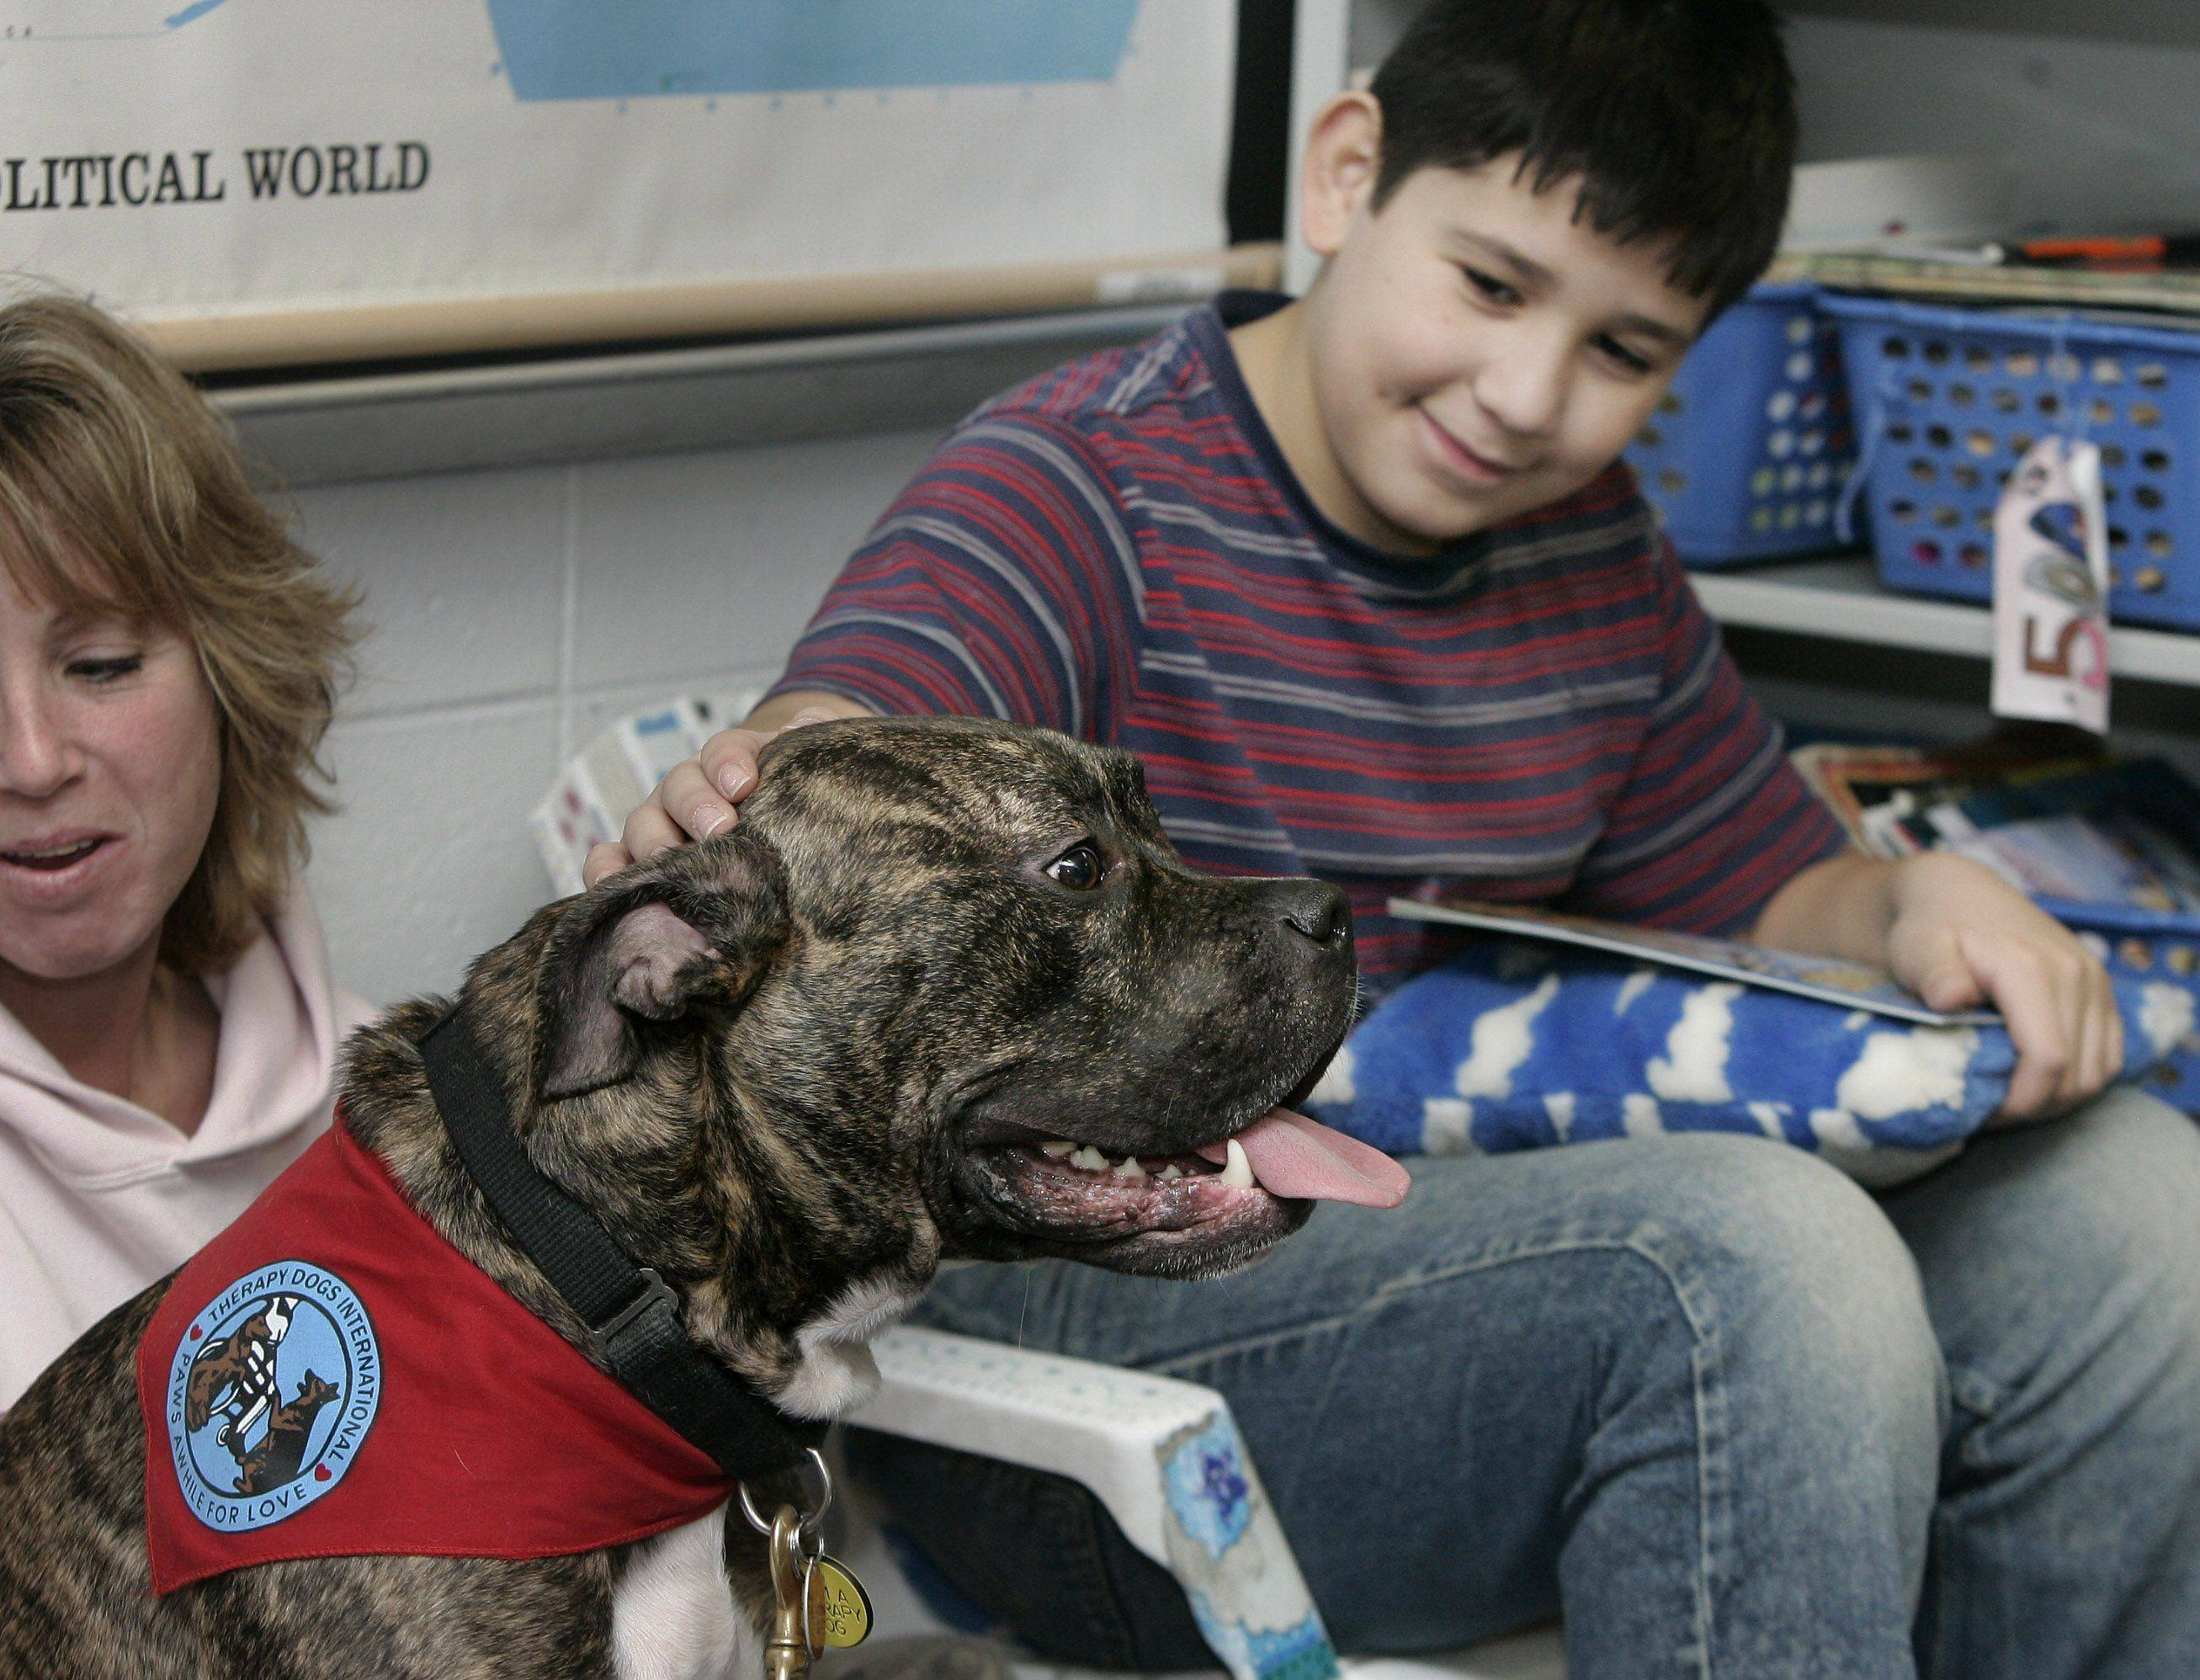 Fifth-grade student Christopher Macias, 10, pets Bitz, a pit bull, as students read in class Monday at Raymond Ellis School in Round Lake Beach. The therapy dogs were brought in by dog handlers Karen Boeing and Traci McCarthy as a new way to interact with children, help them read aloud, and improve their reading skills.